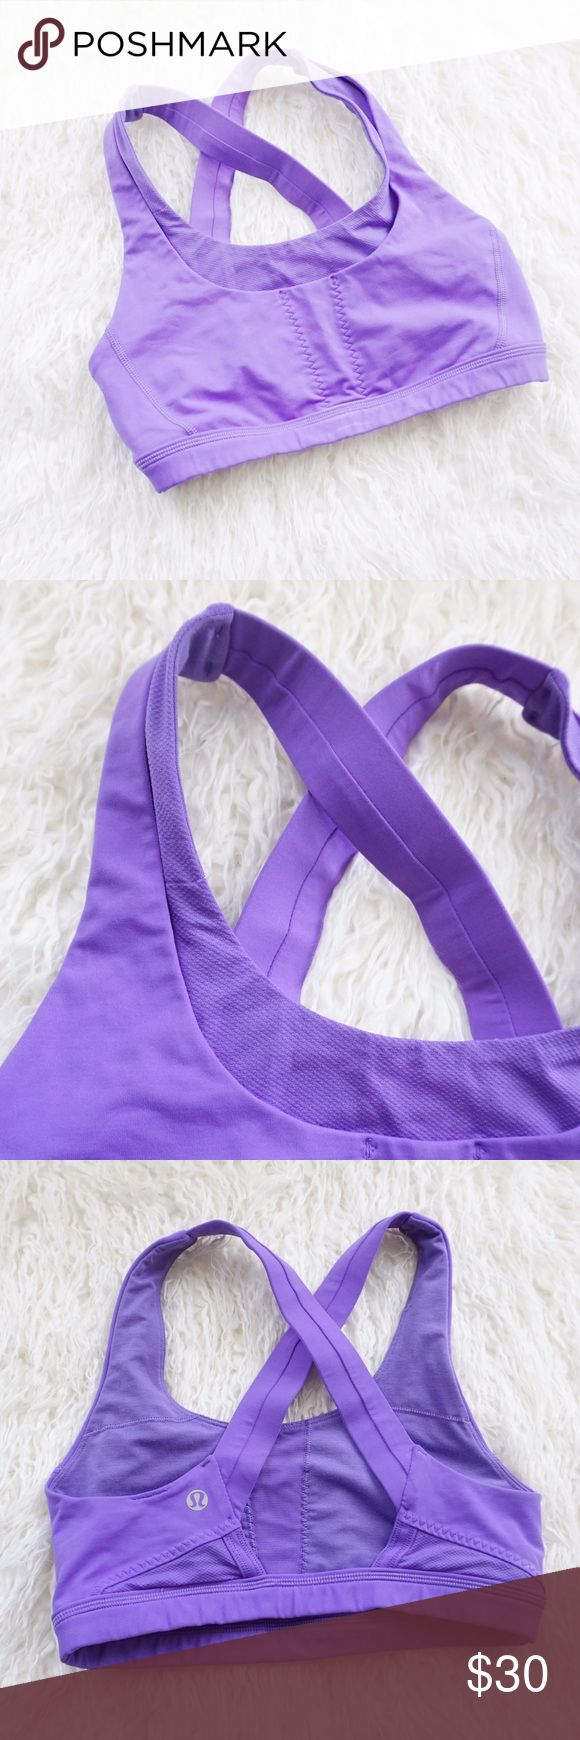 Lululemon Cross Back Purple Sports Bra Lululemon cross back Sports Bra size 4. More full coverage, better for higher intensity workouts or runs. Purple color that is great for spring!  Does not include pads. In excellent condition with no stains rips or tears. lululemon athletica Intimates & Sleepwear Bras